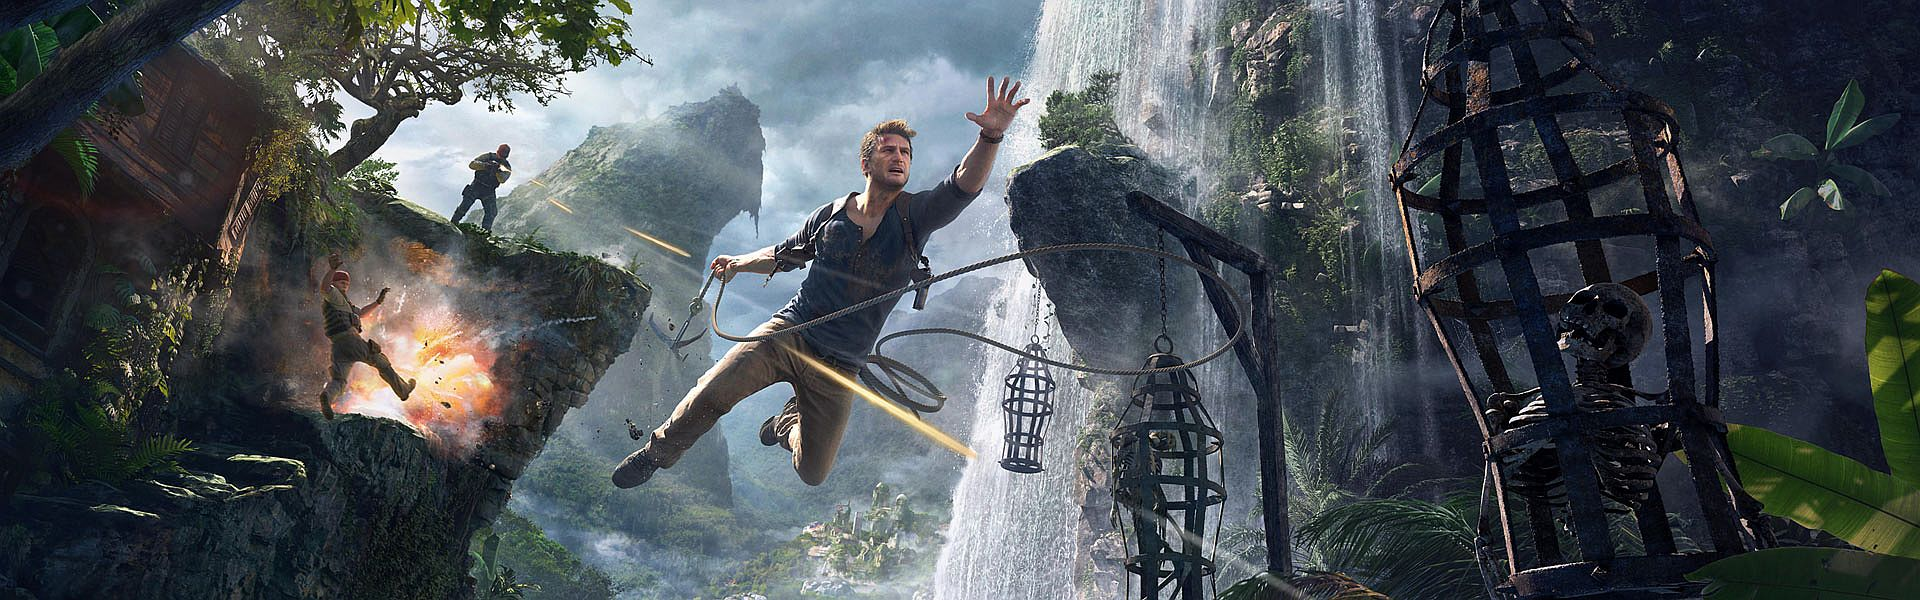 Uncharted 4 Patch 108 And First Multiplayer DLC To Be